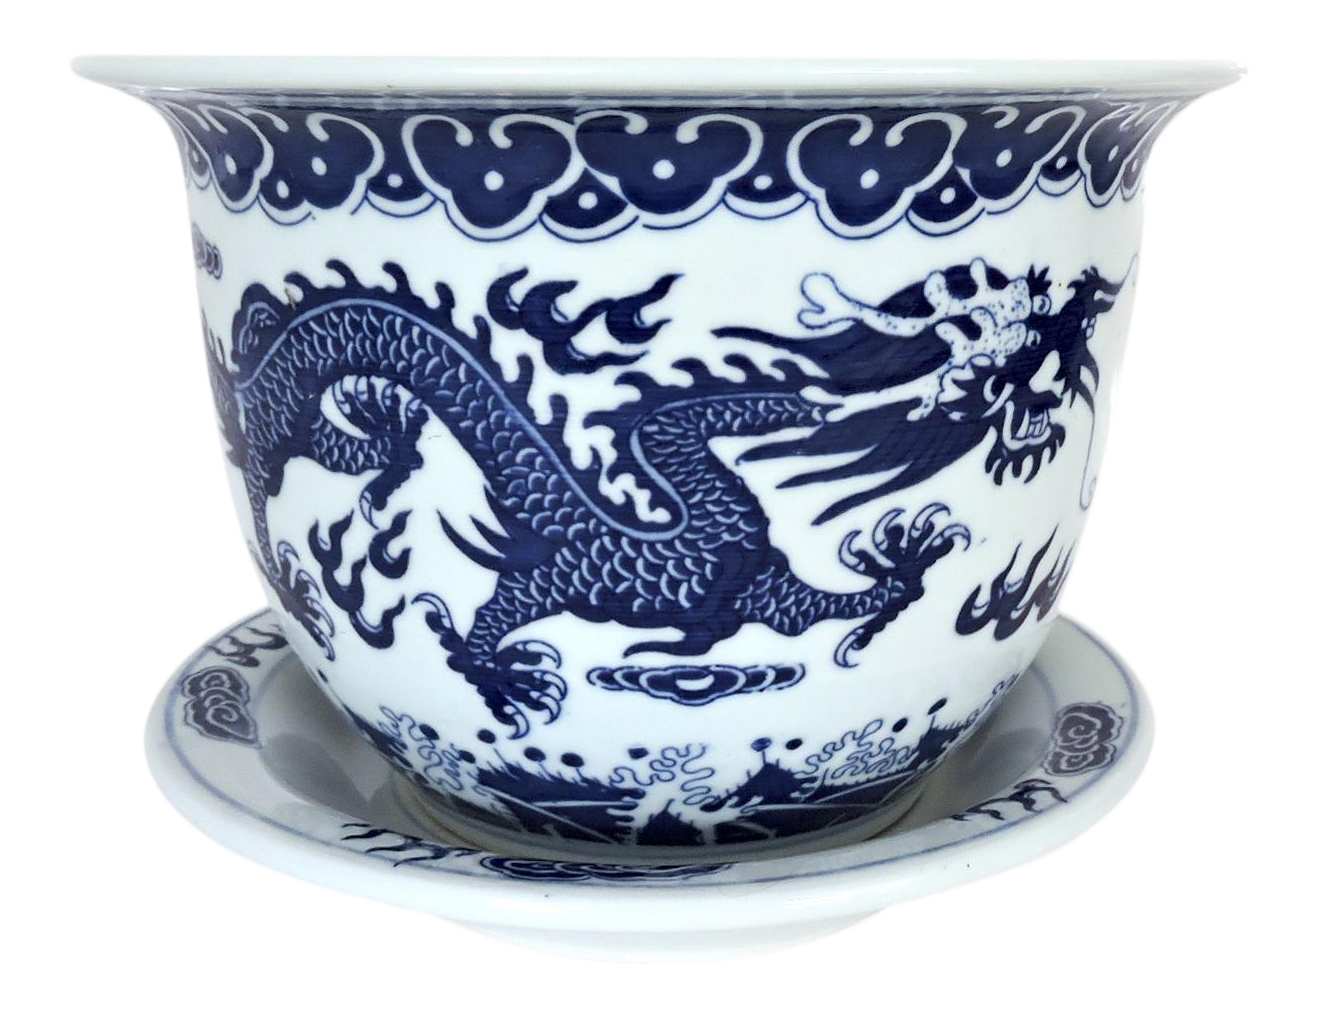 Vintage Blue And White Dragon Planter Plant Pot On Chairish Com Please Feel Free To Contact Us Directly If You Have Chinese Plants Garden Artwork Plant Pots Uk